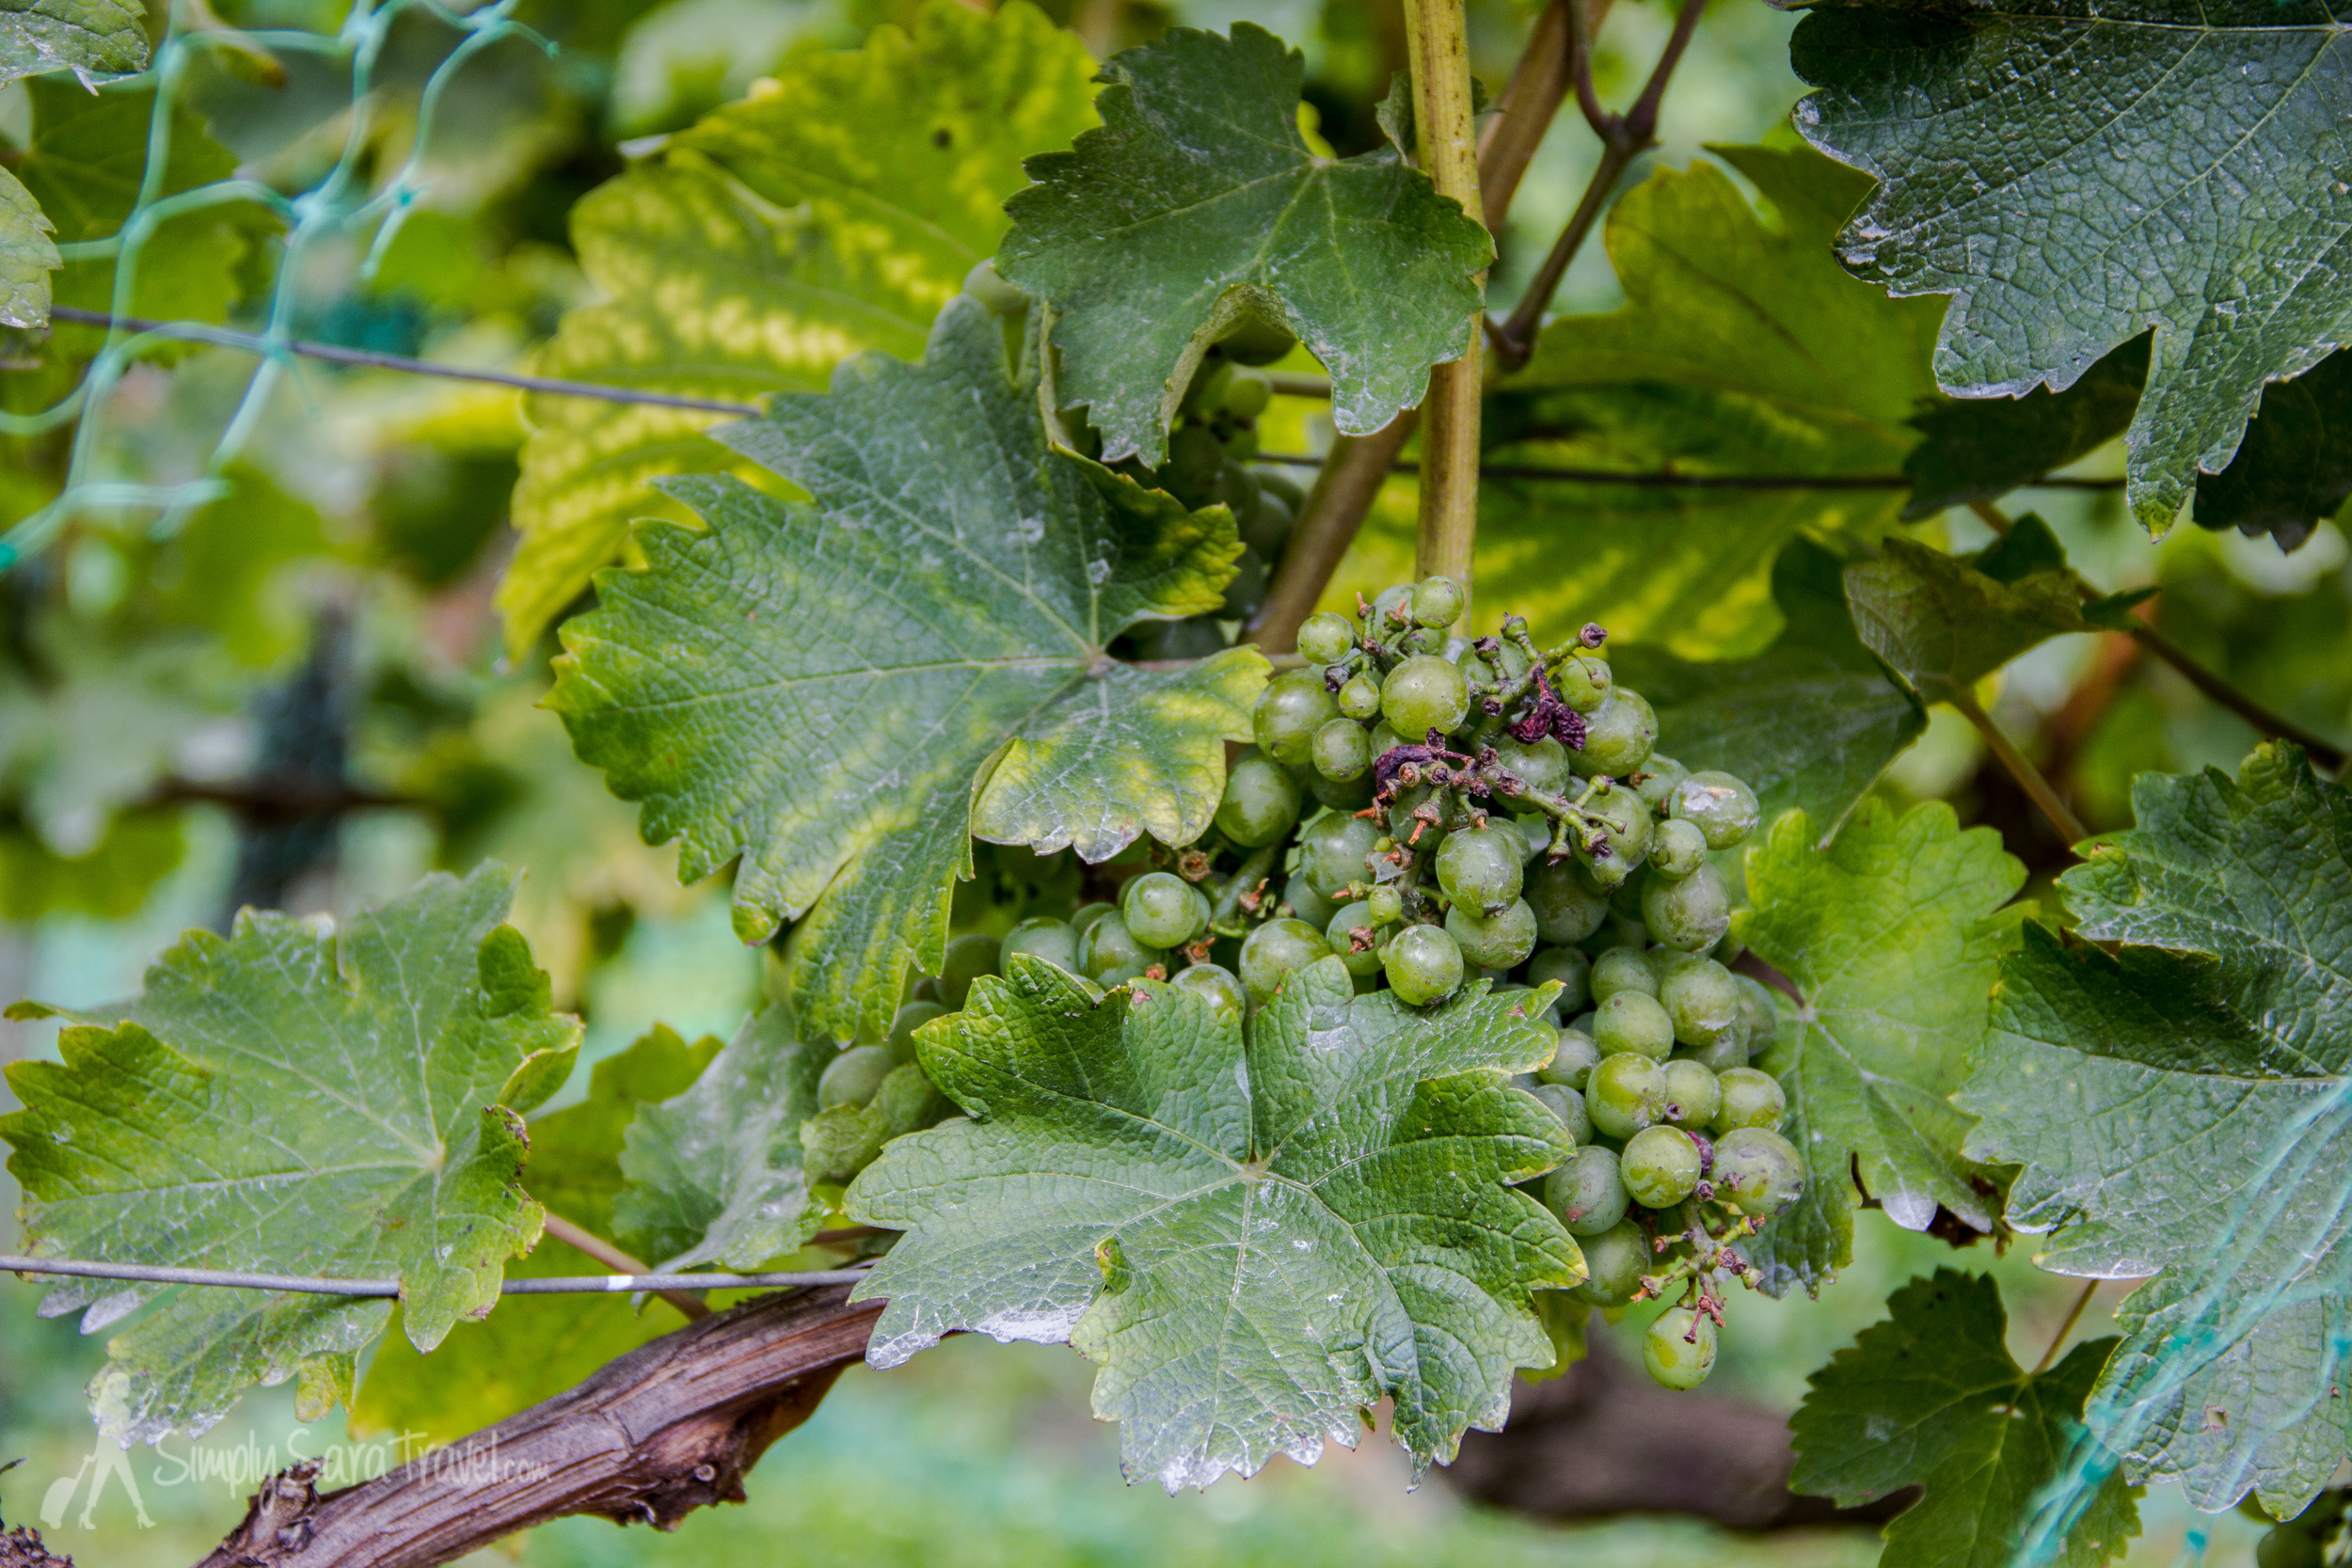 The grapes in Parc de Bercy's vineyard were looking pretty ripe late August!